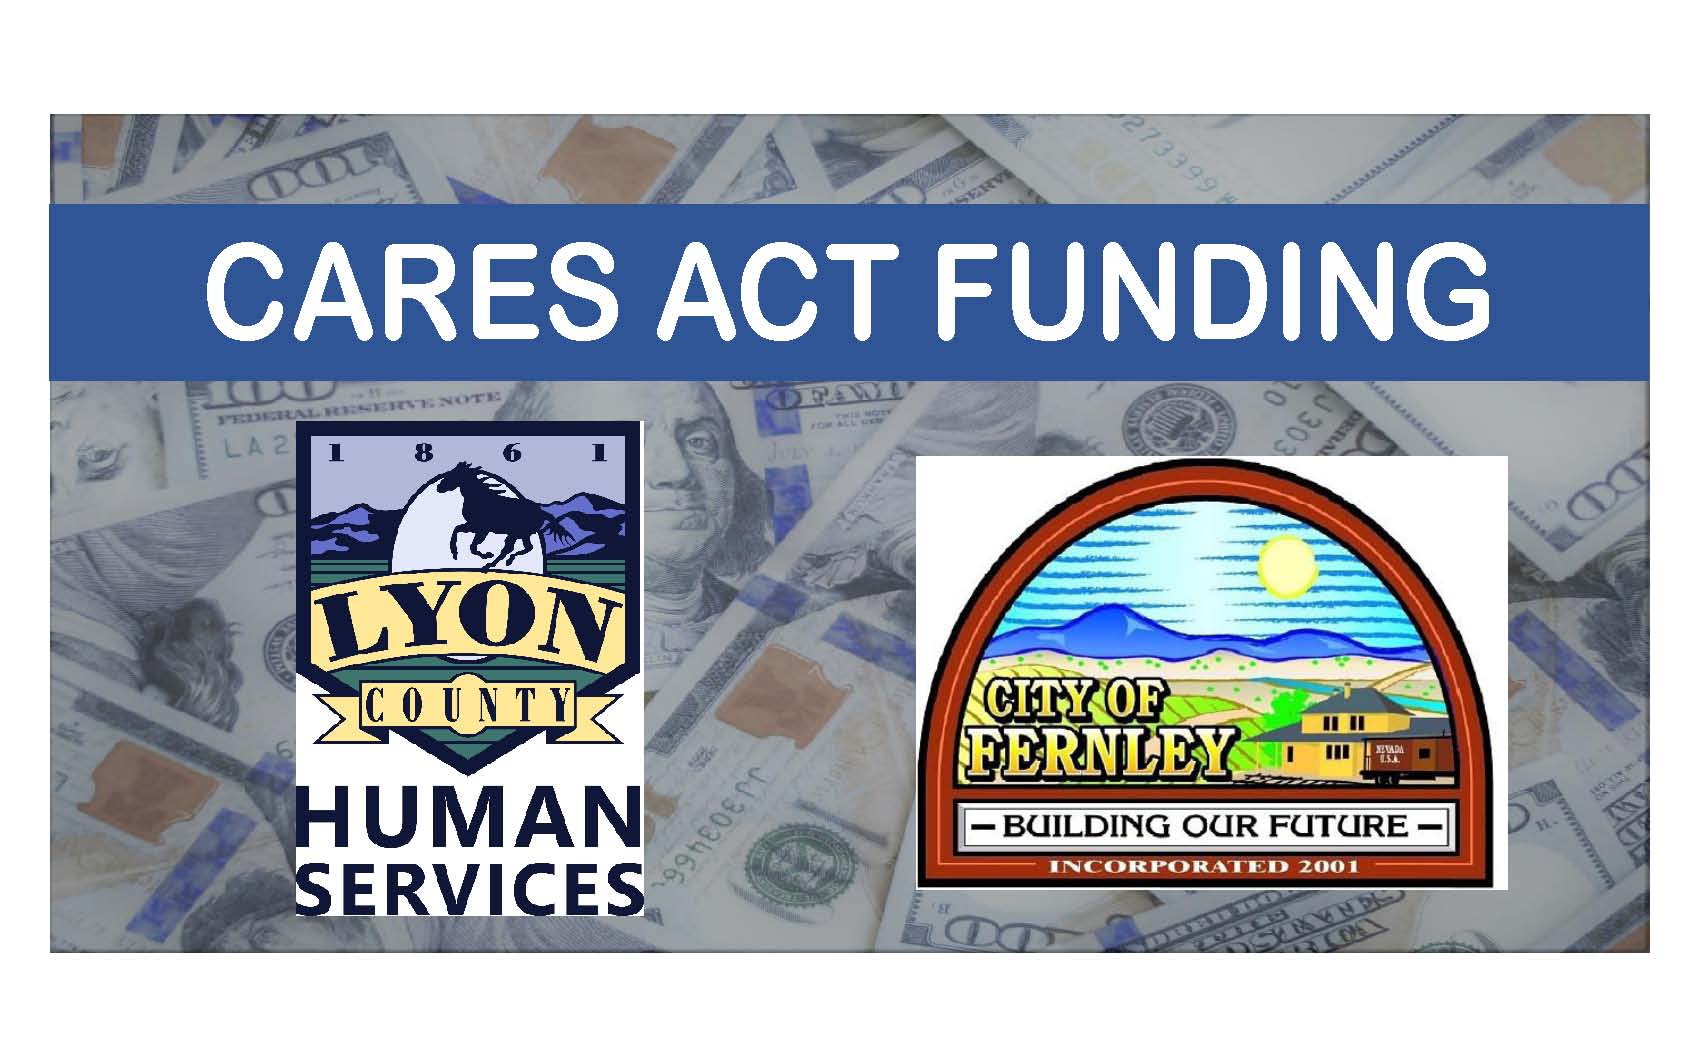 CARES Act Funding pic 2